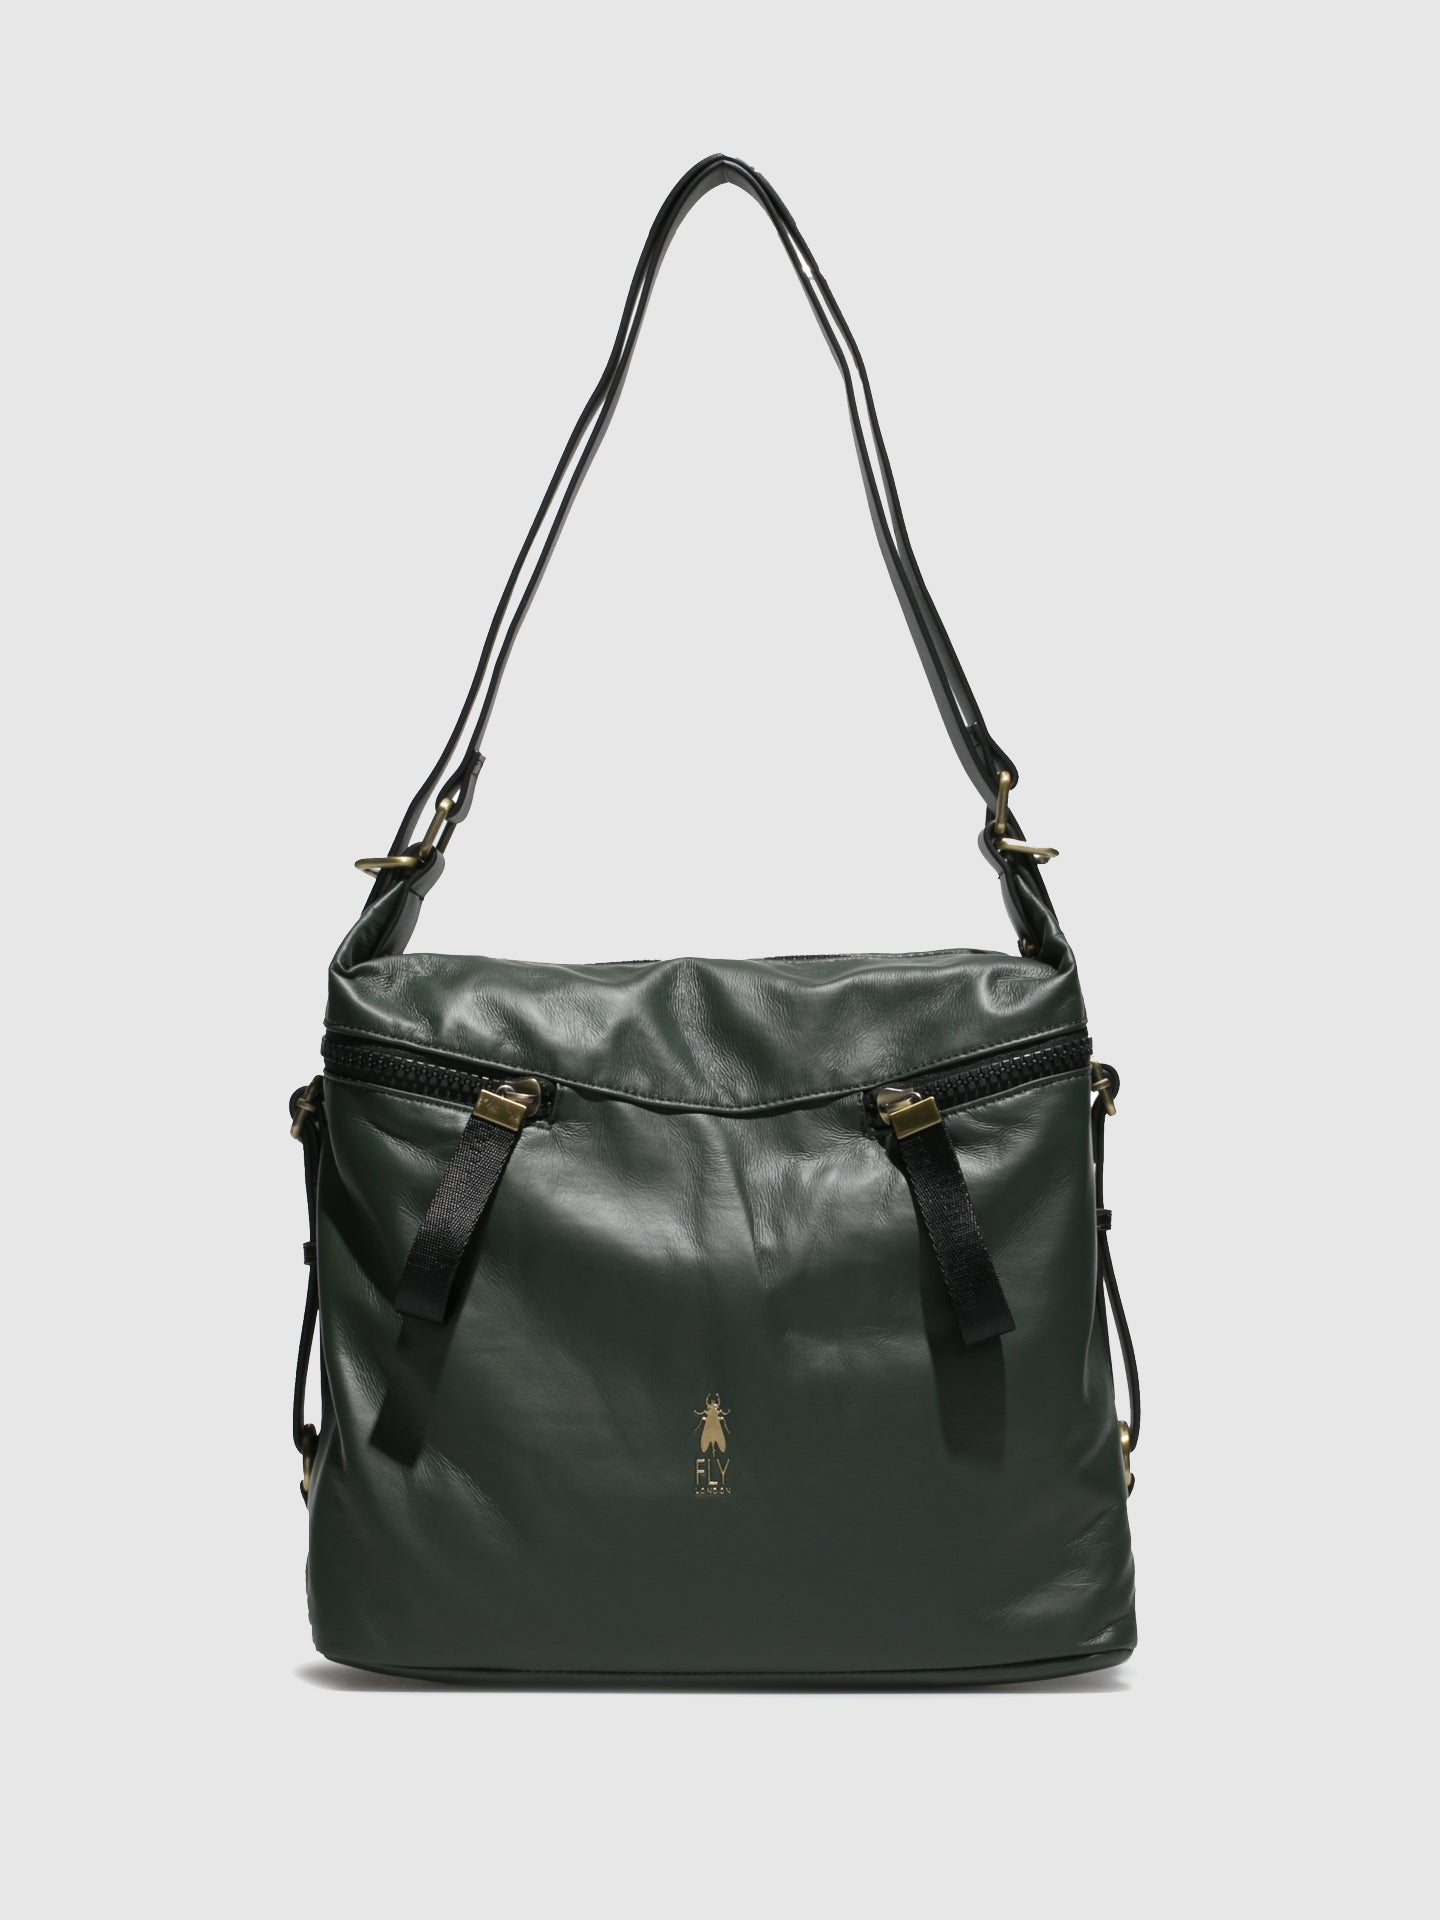 Fly London Shoulder Bags ARYA706FLY ATWOOD DK GREEN